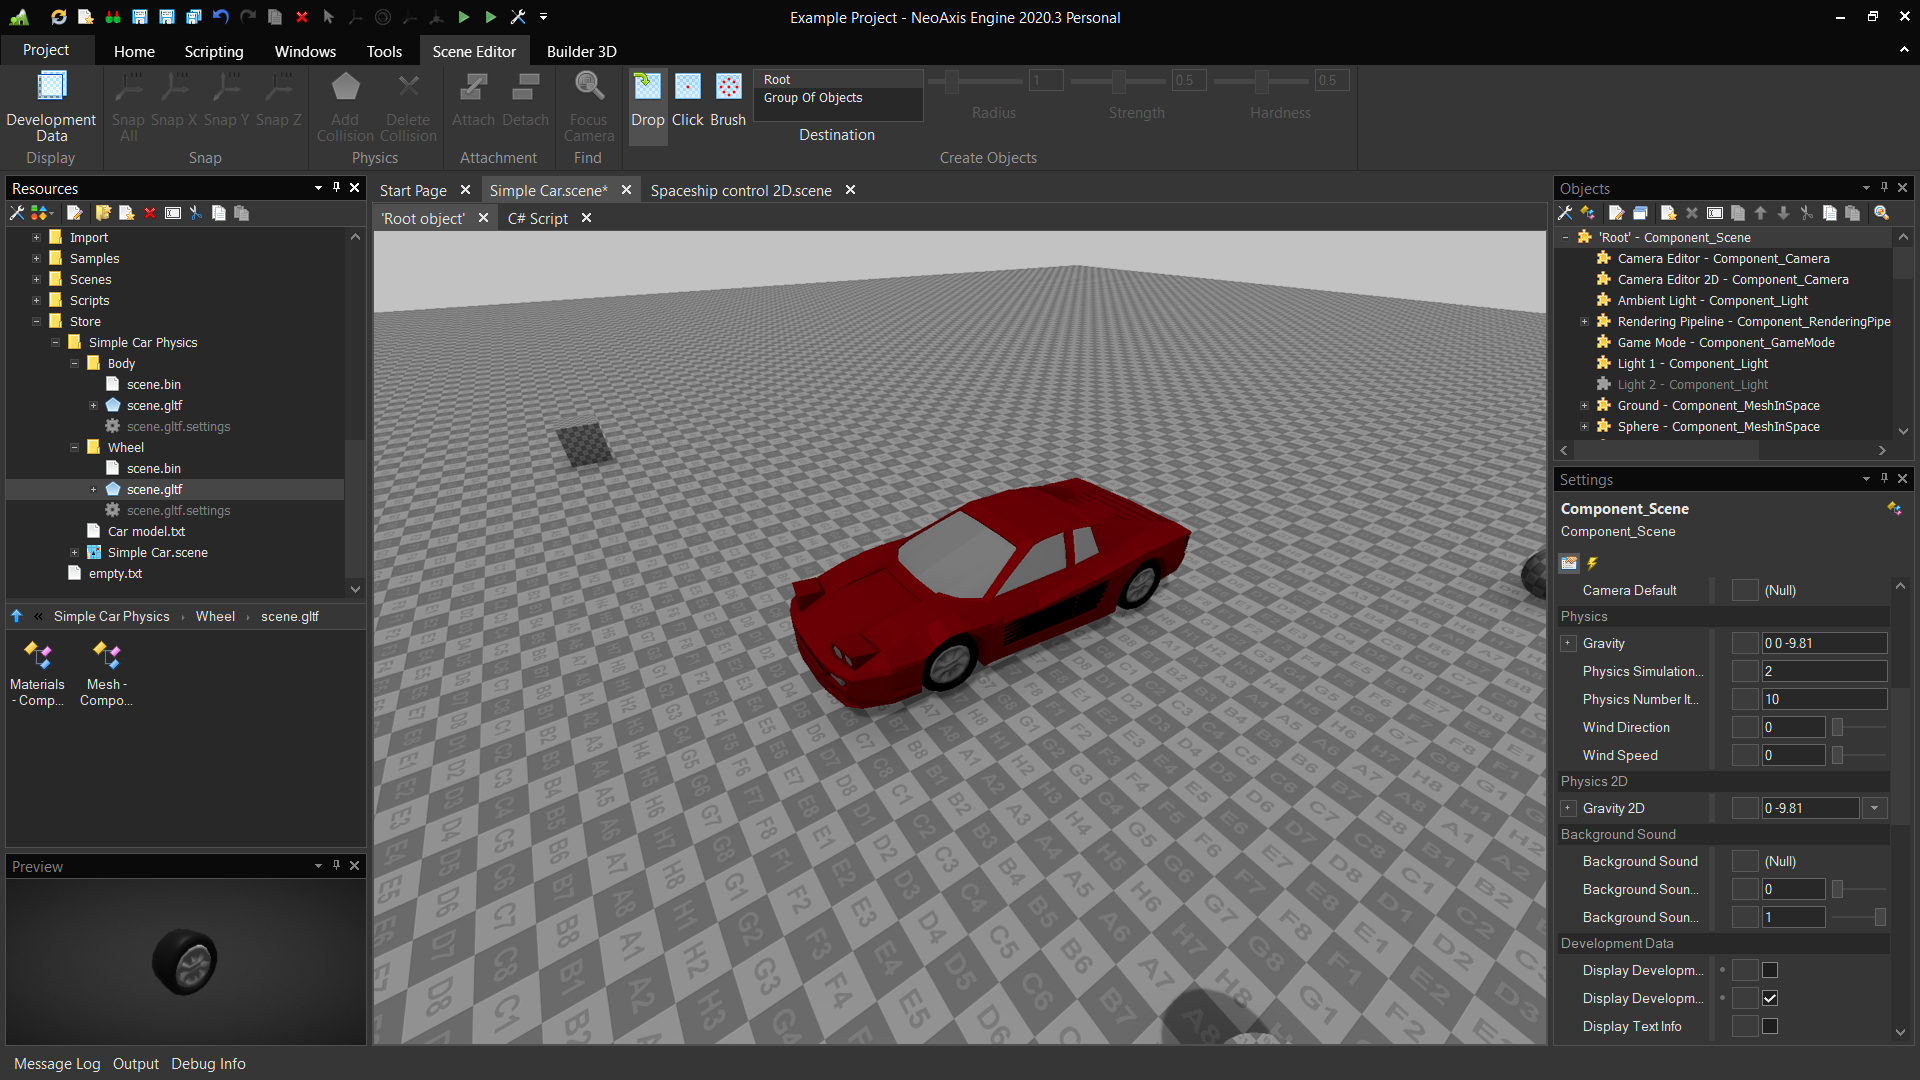 NeoAxis Engine: Simple Car Physics | Вышел NeoAxis Engine 2020.3 (теперь open source)